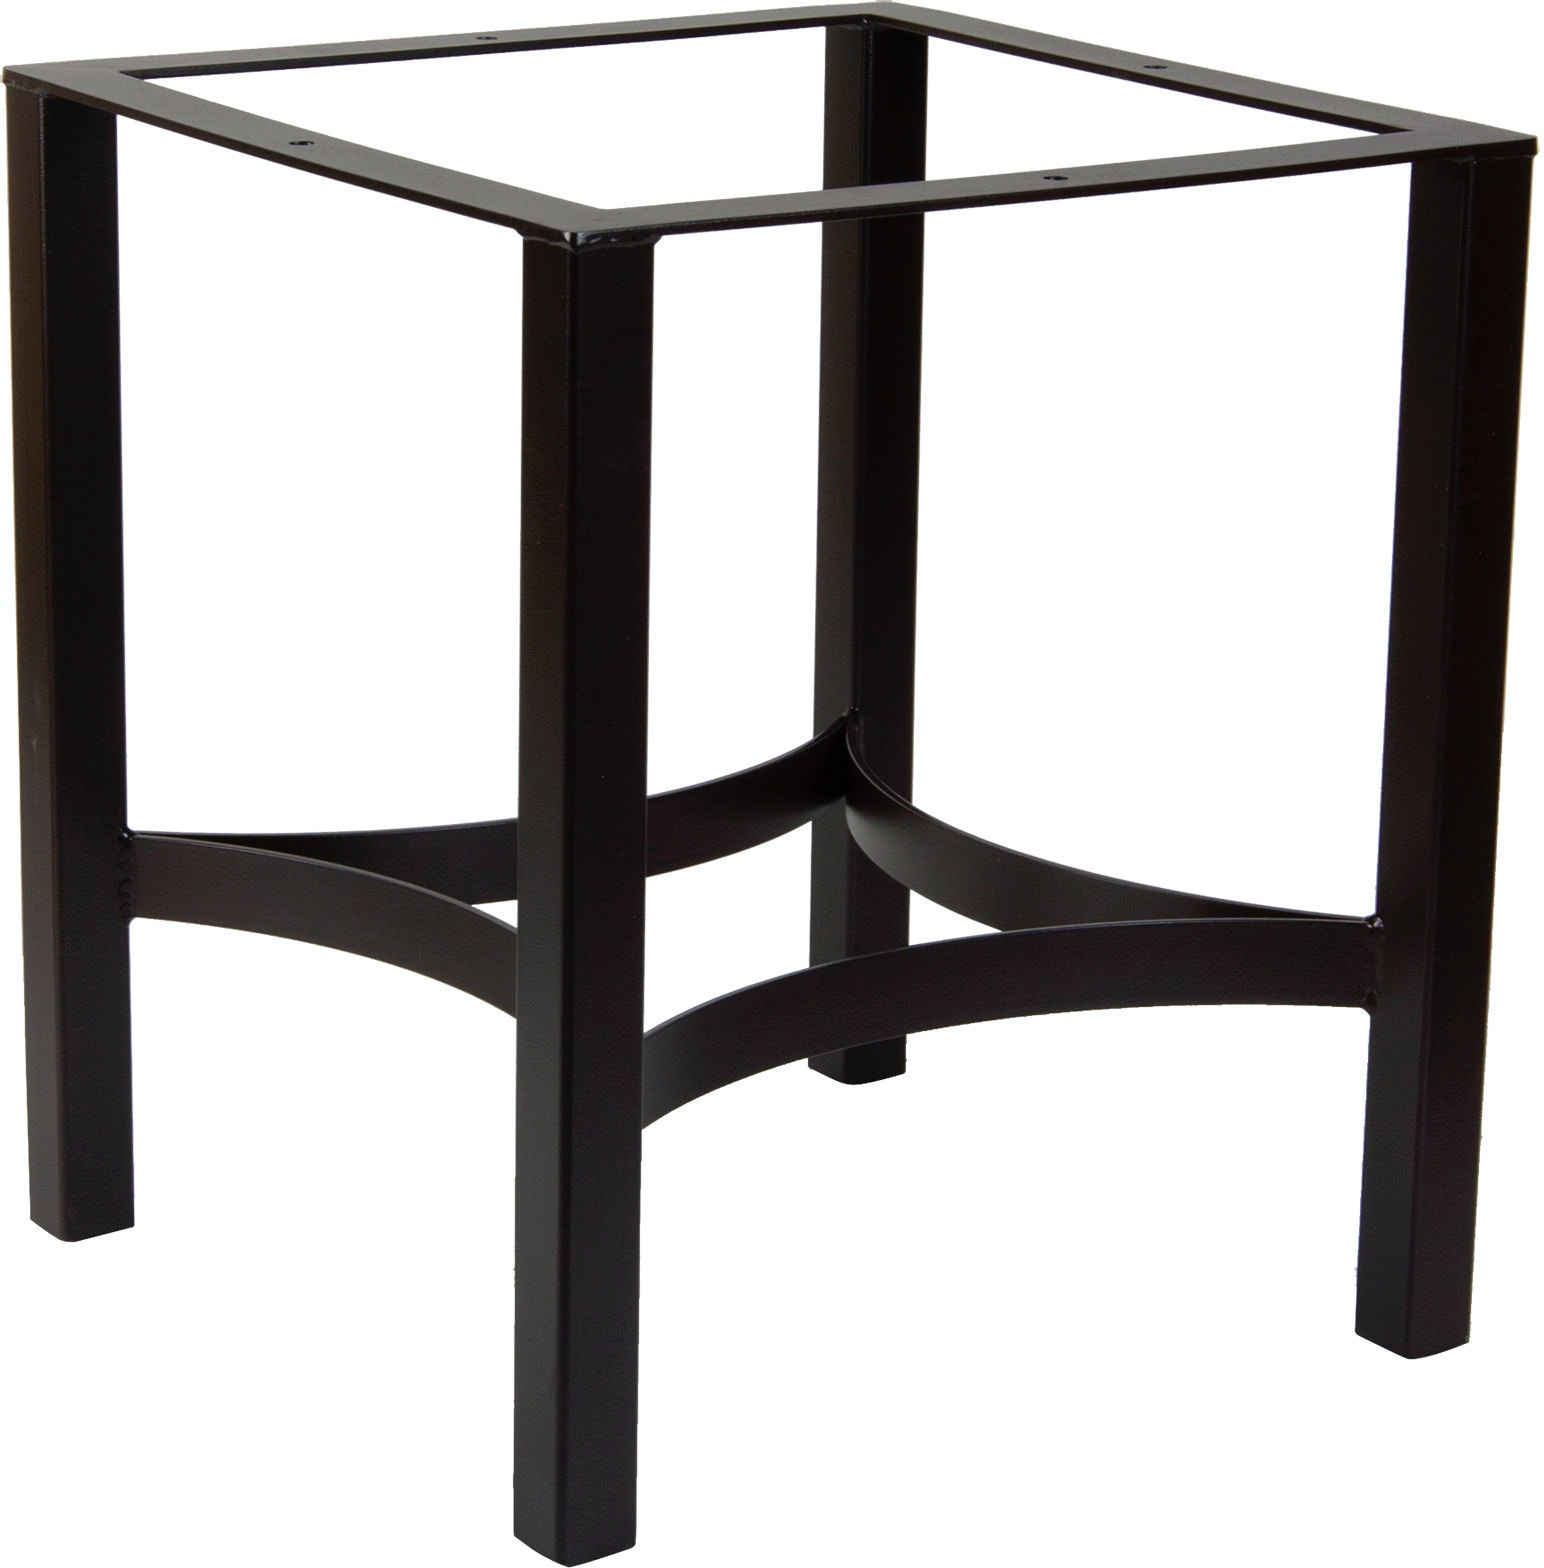 Ow Lee Outdoor Patio 03 Dining Table Base 1 Dt03 Zing